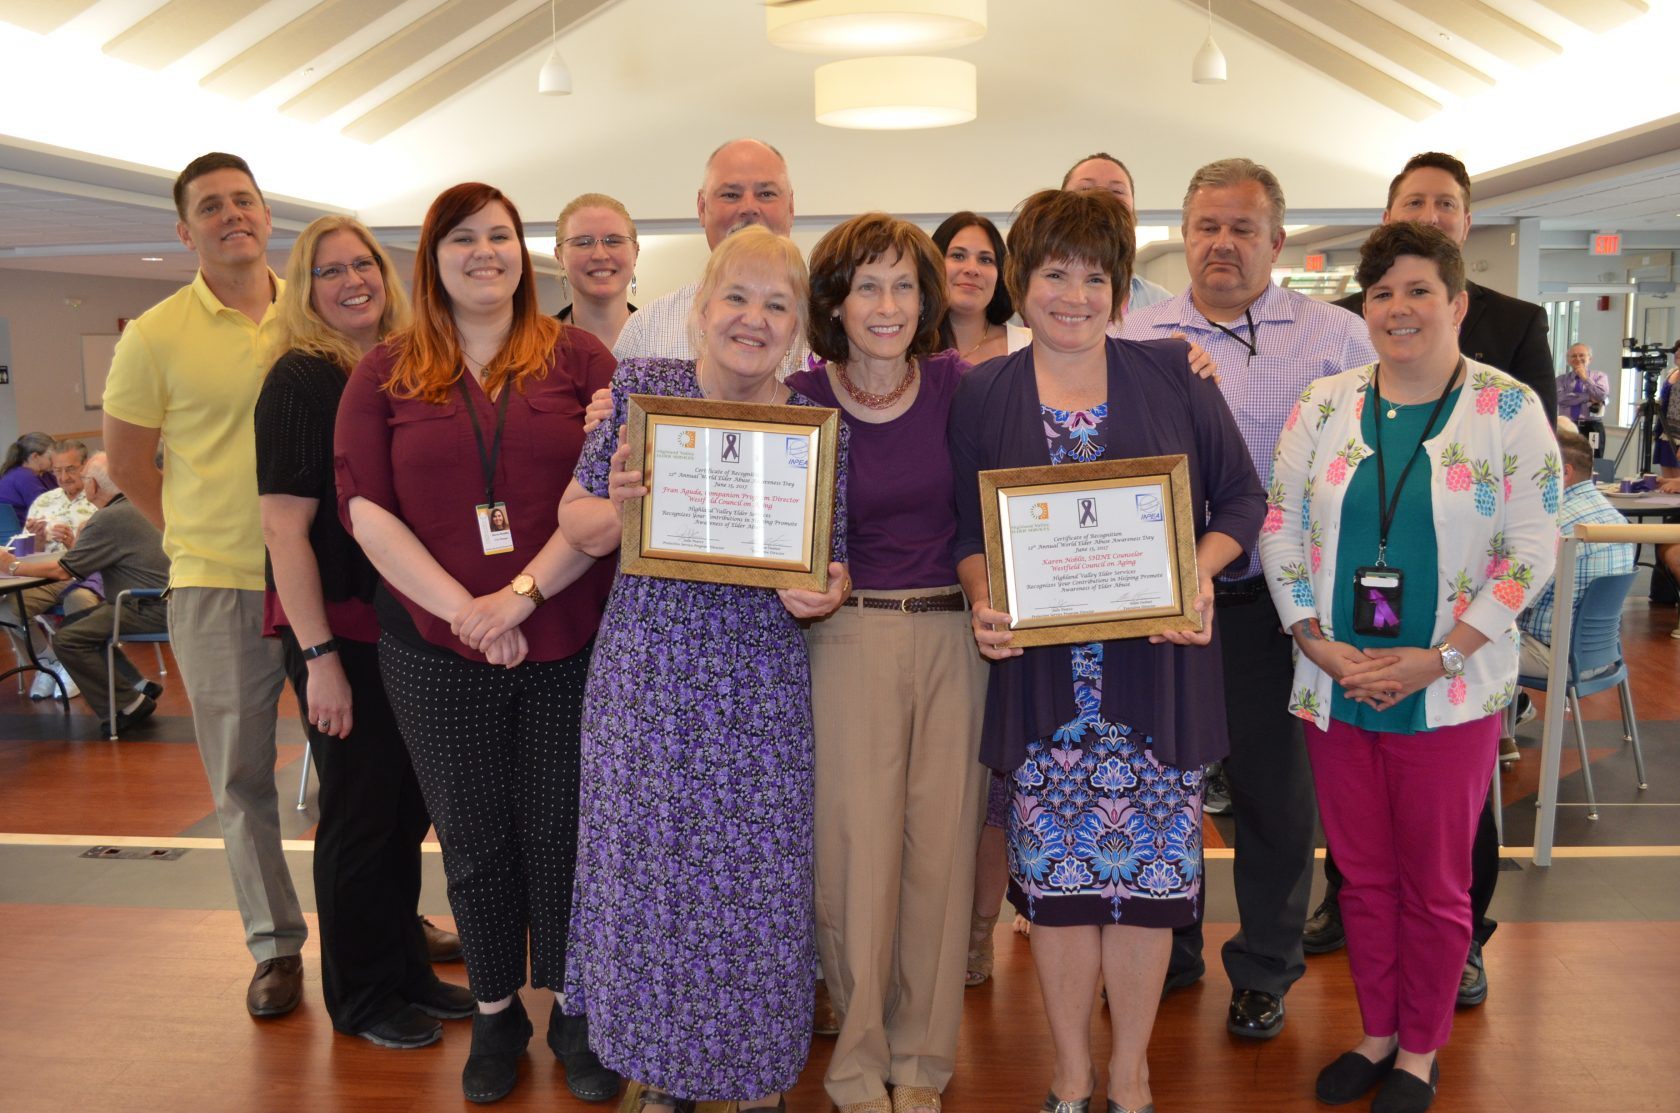 Women feted for work keeping seniors safe